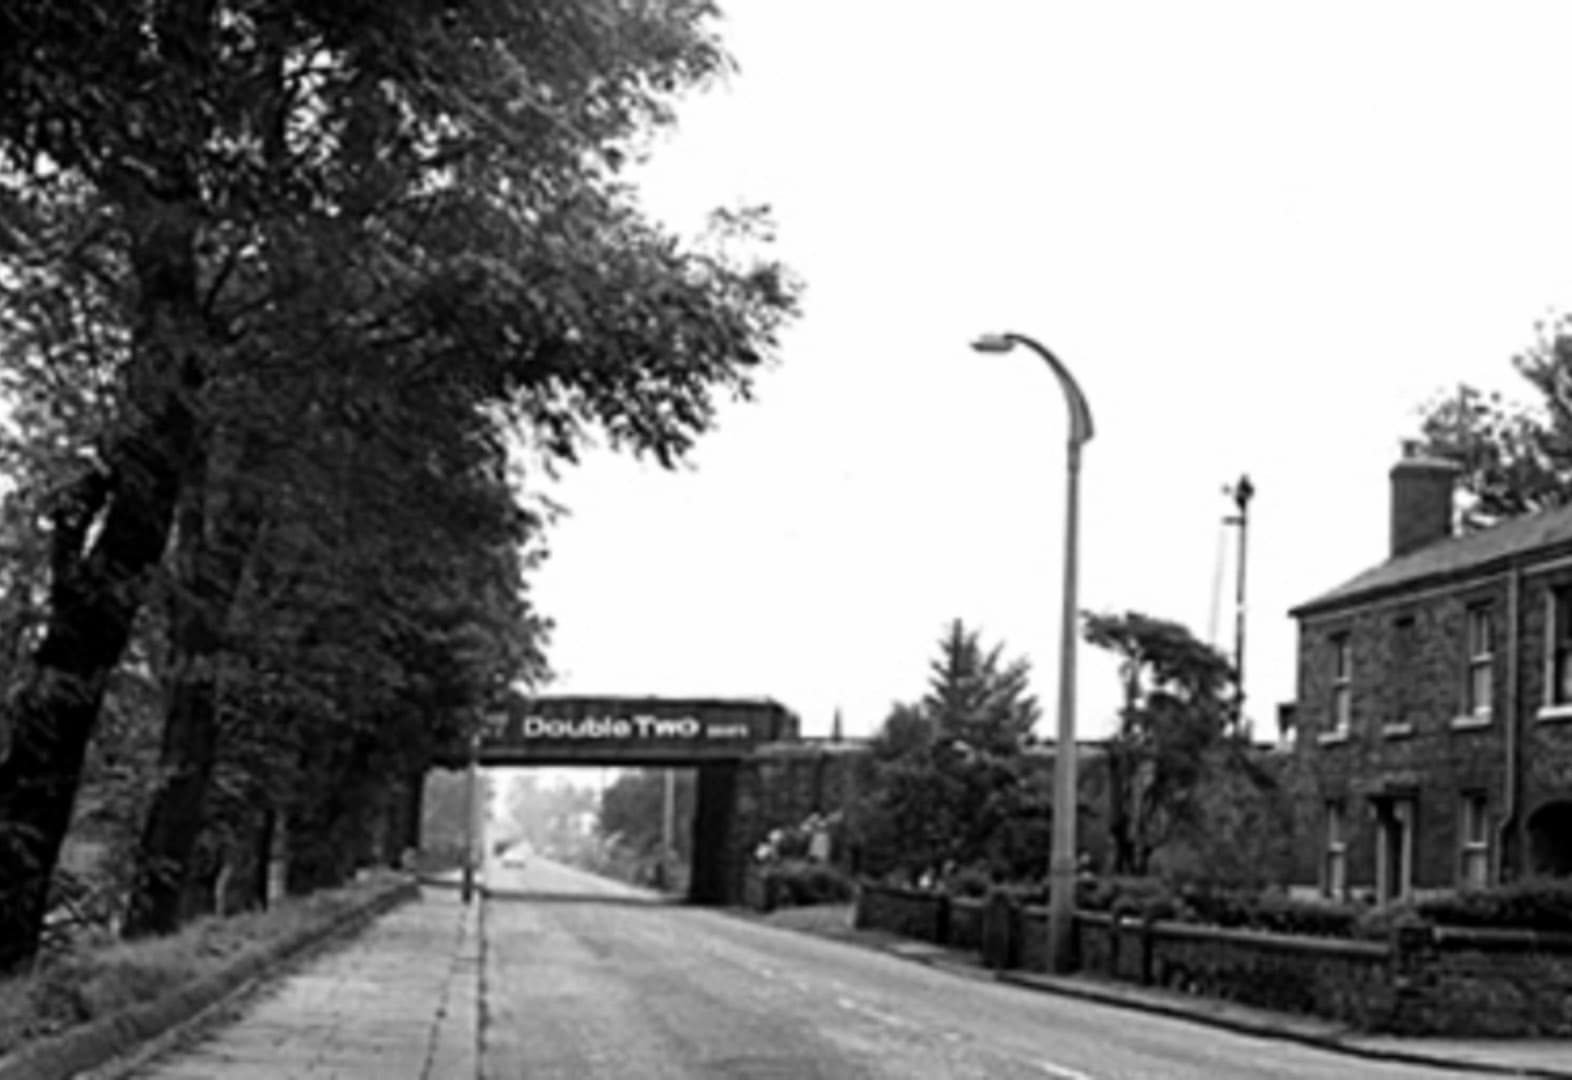 Double TWO Bridge on Barnsley Road, Sandal, Wakefield